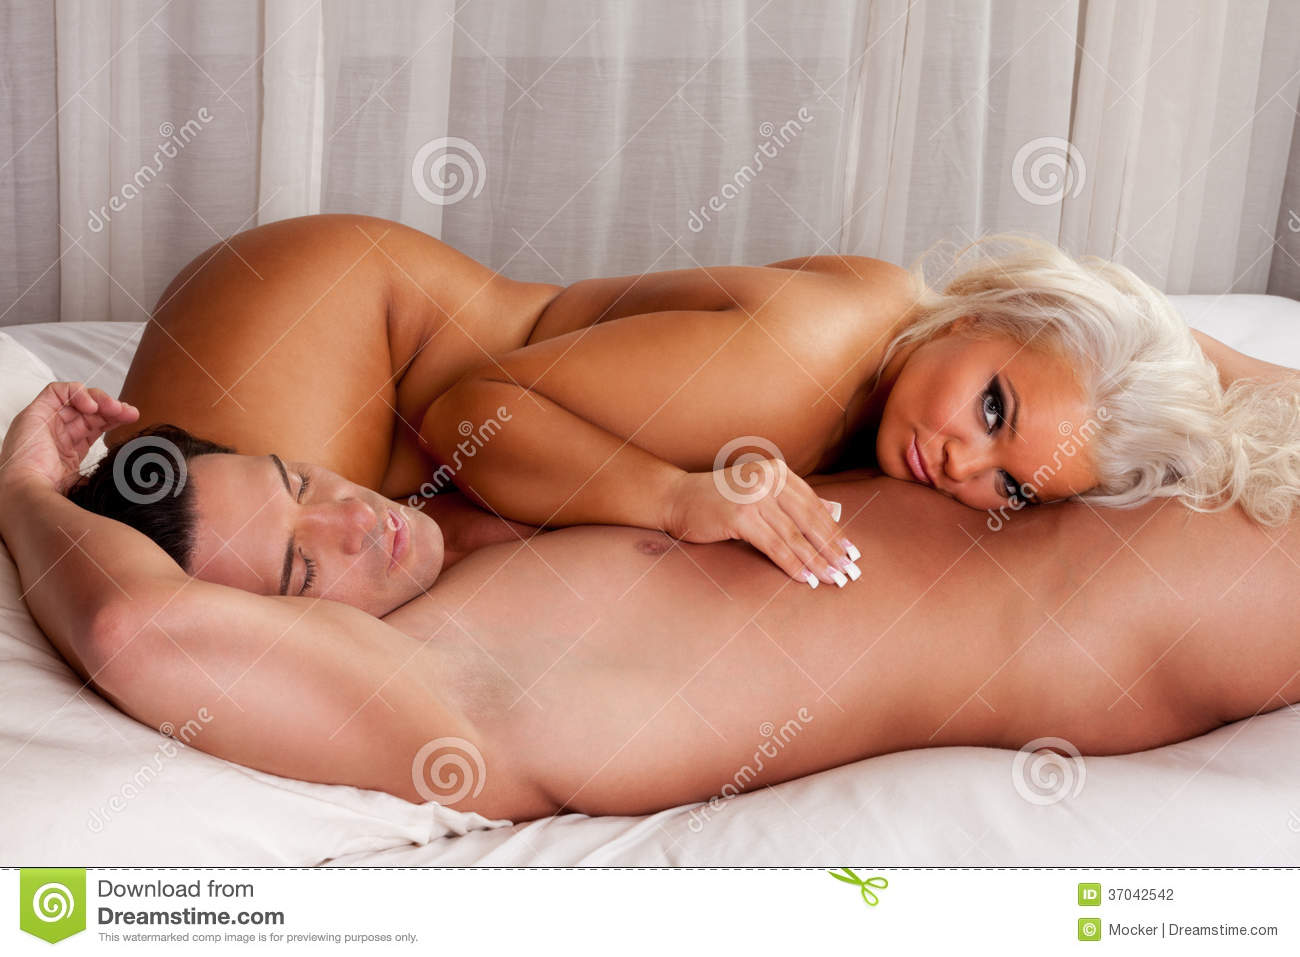 Sexy naked couples on bed images